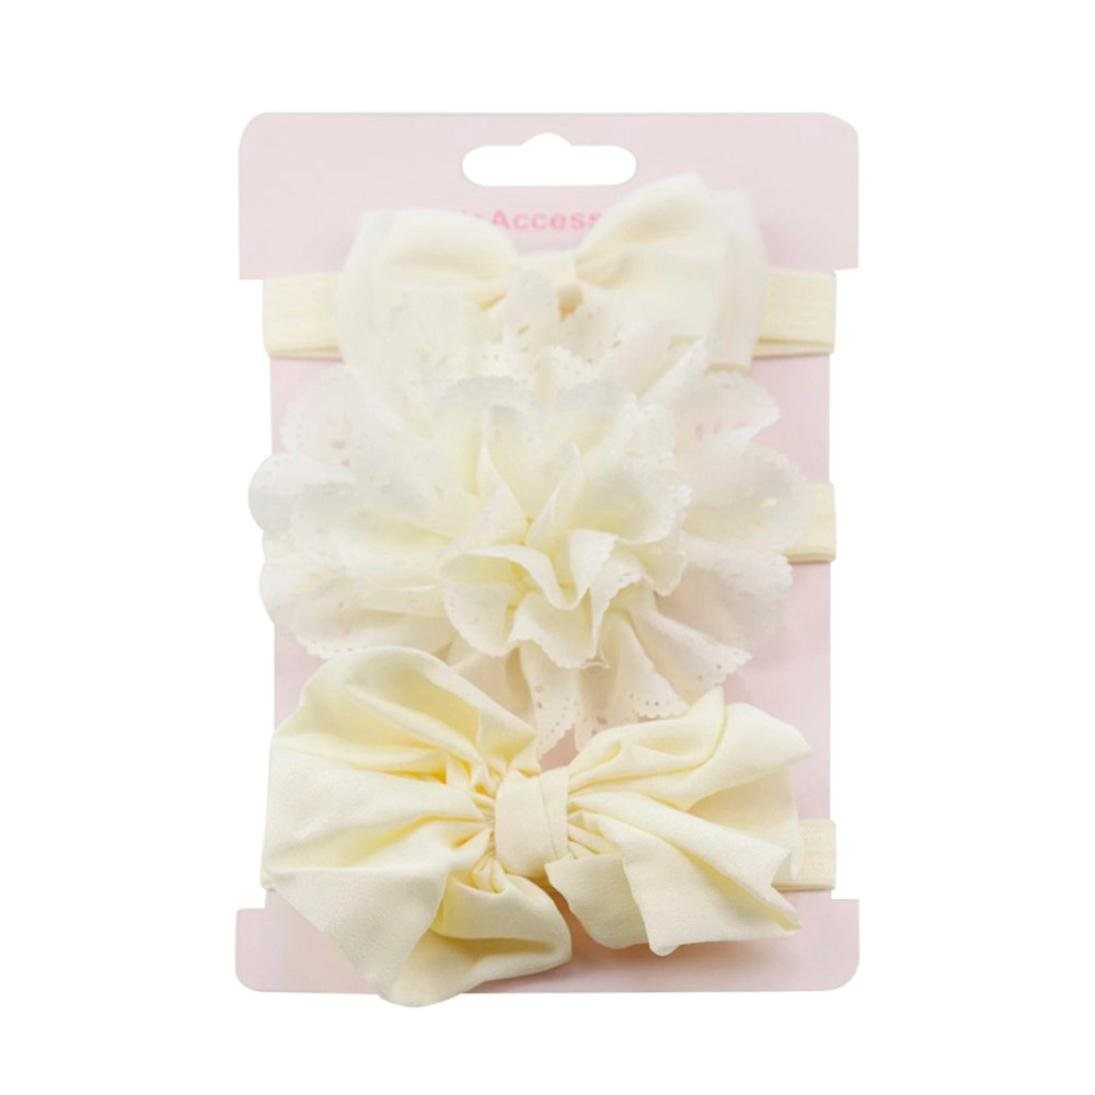 Clearance! 3pcs Baby's Headbands Girl's Cute Hair Bows Hair Bands Newborn Headband (Beige)